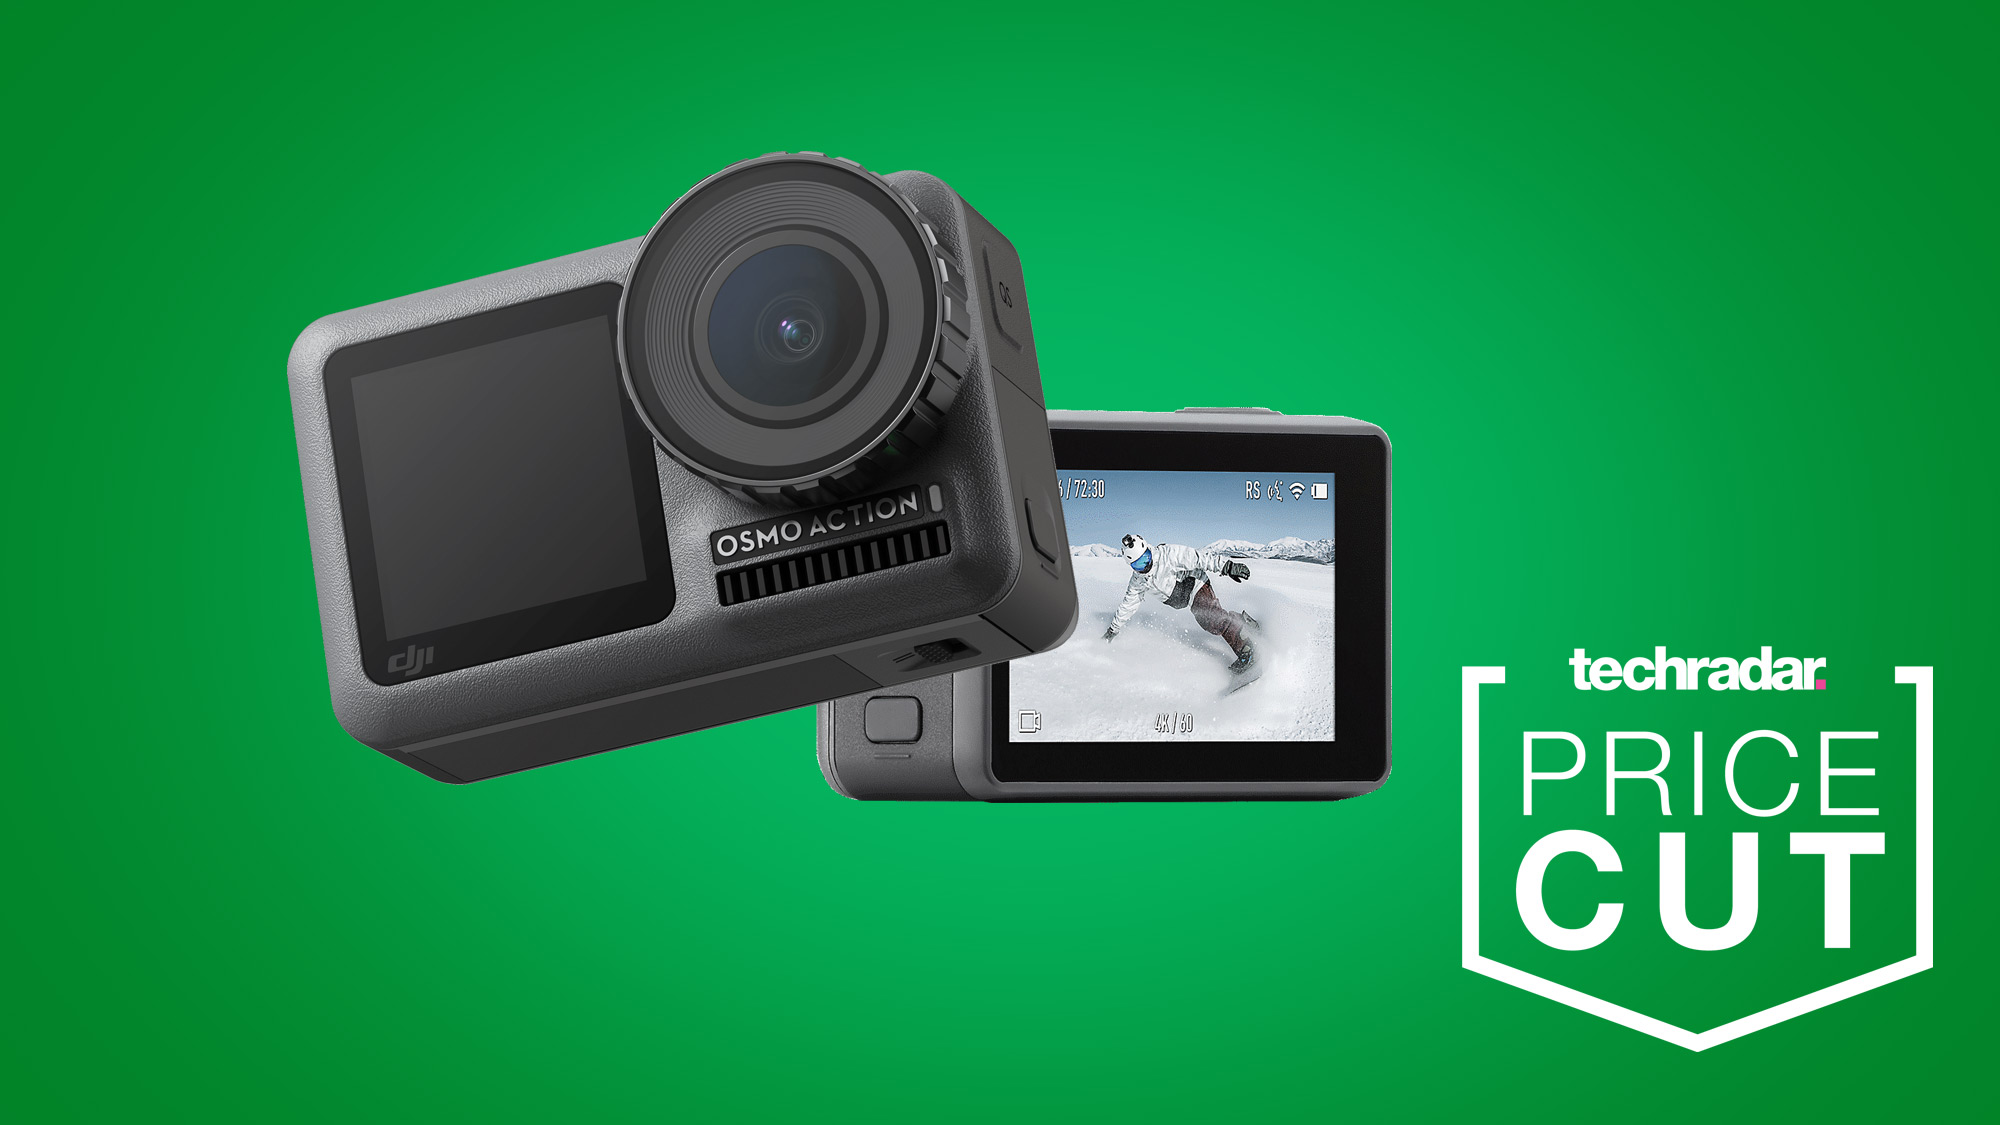 DJI Osmo Action receives amazing price drop in latest action camera deals